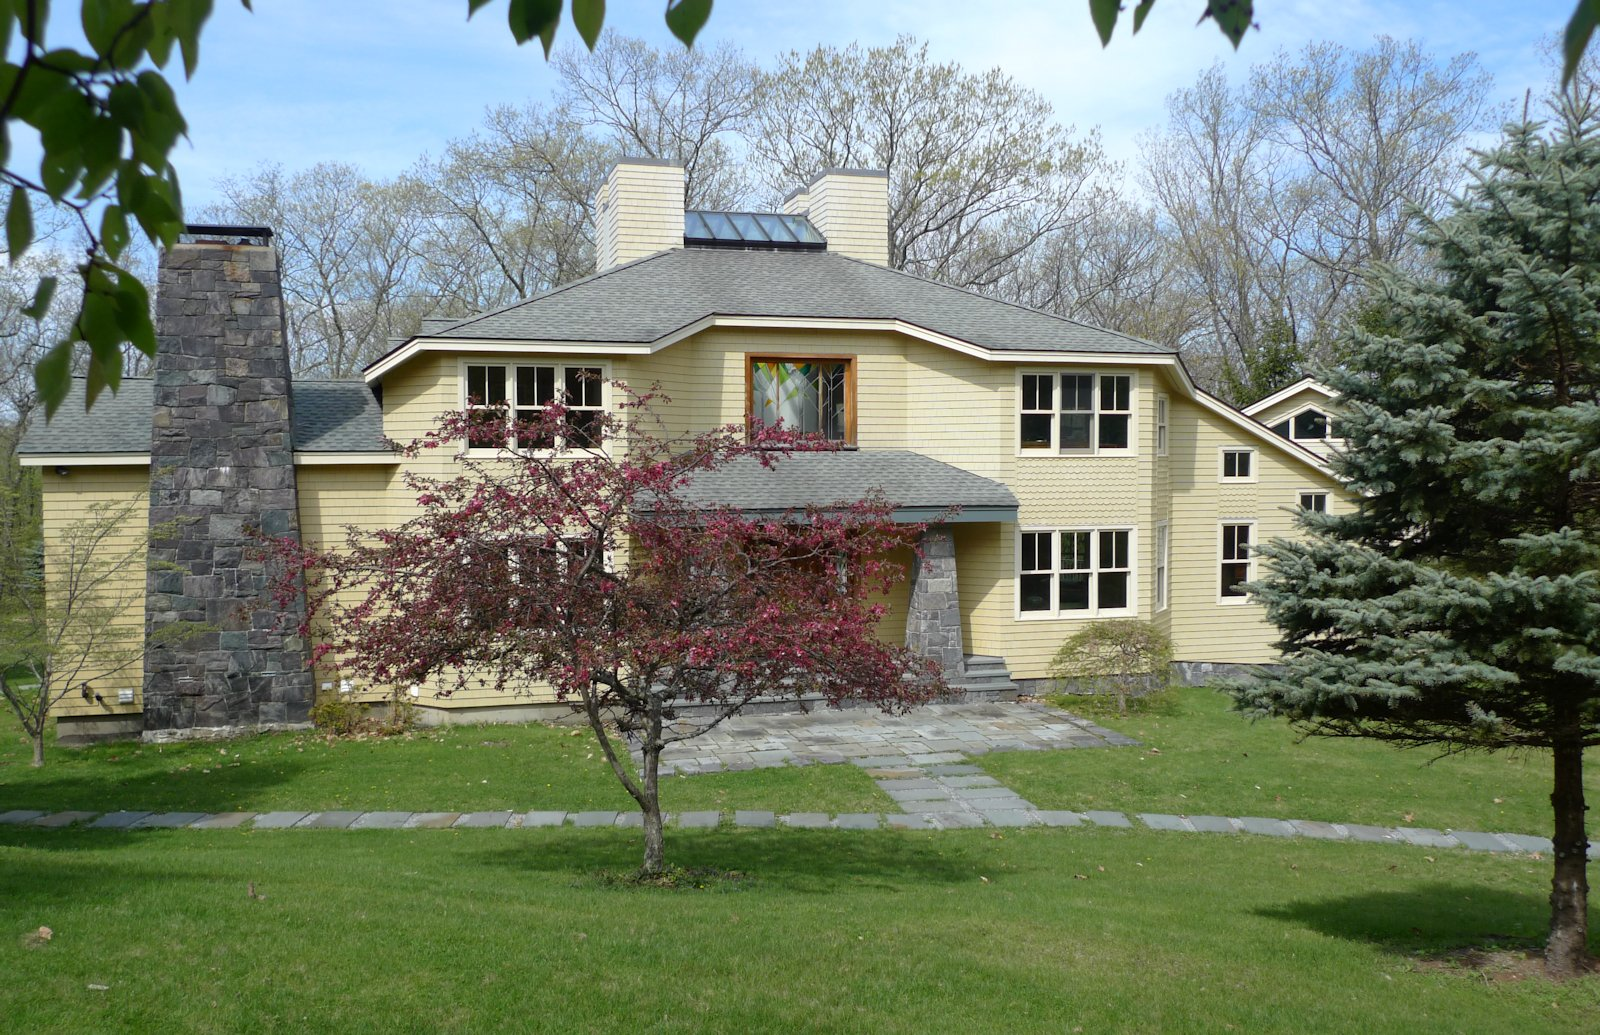 Single Family Home for Sale at Killearn Road Millbrook, New York 12545 United States